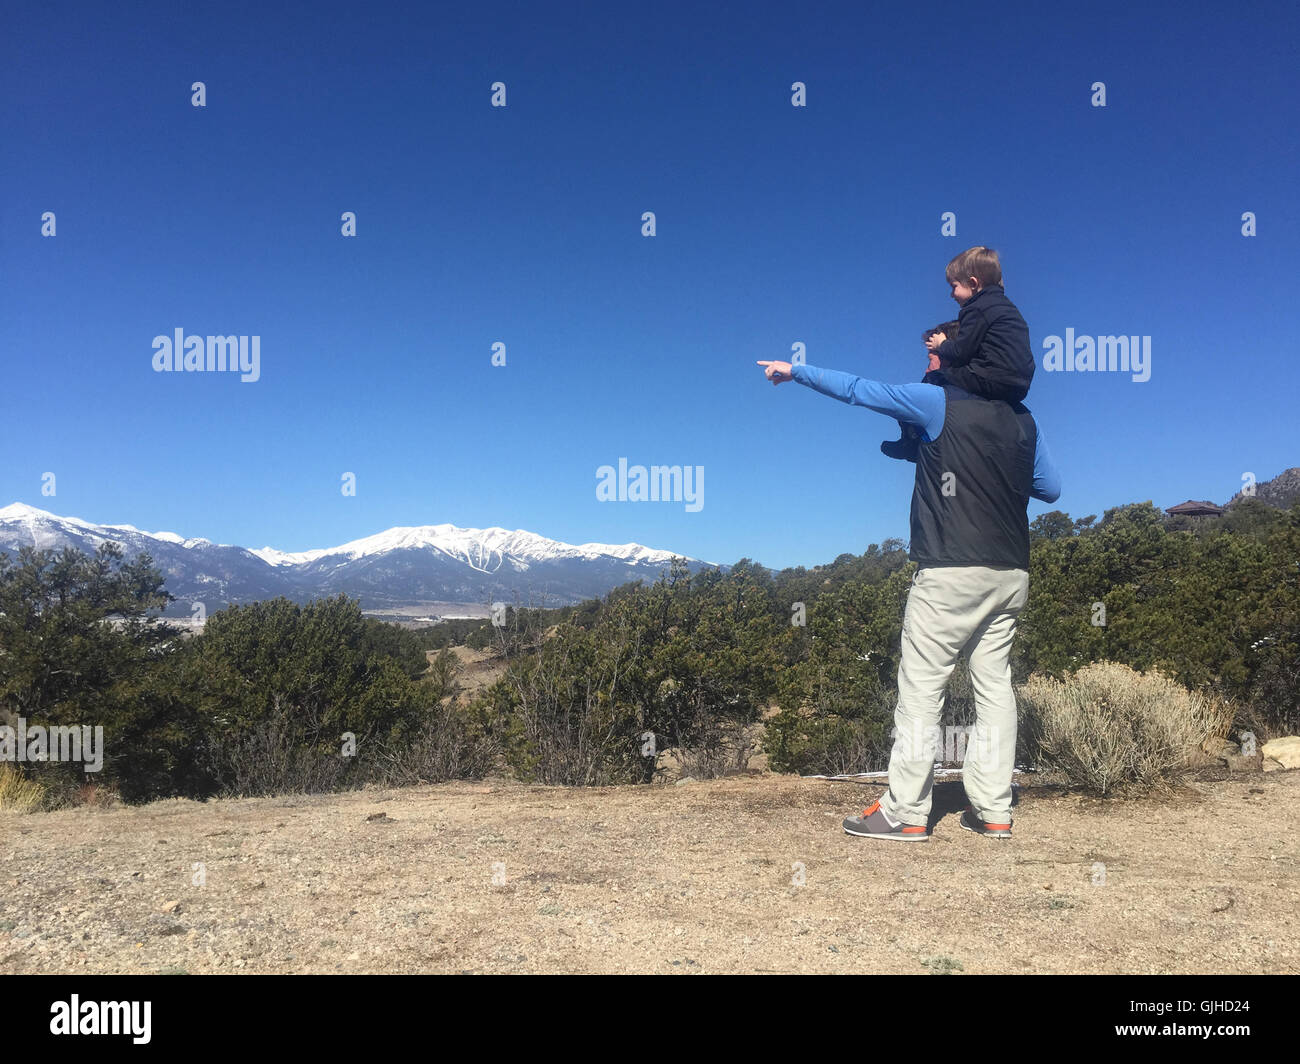 Boy sitting on father's shoulders, Colorado, America, USA - Stock Image